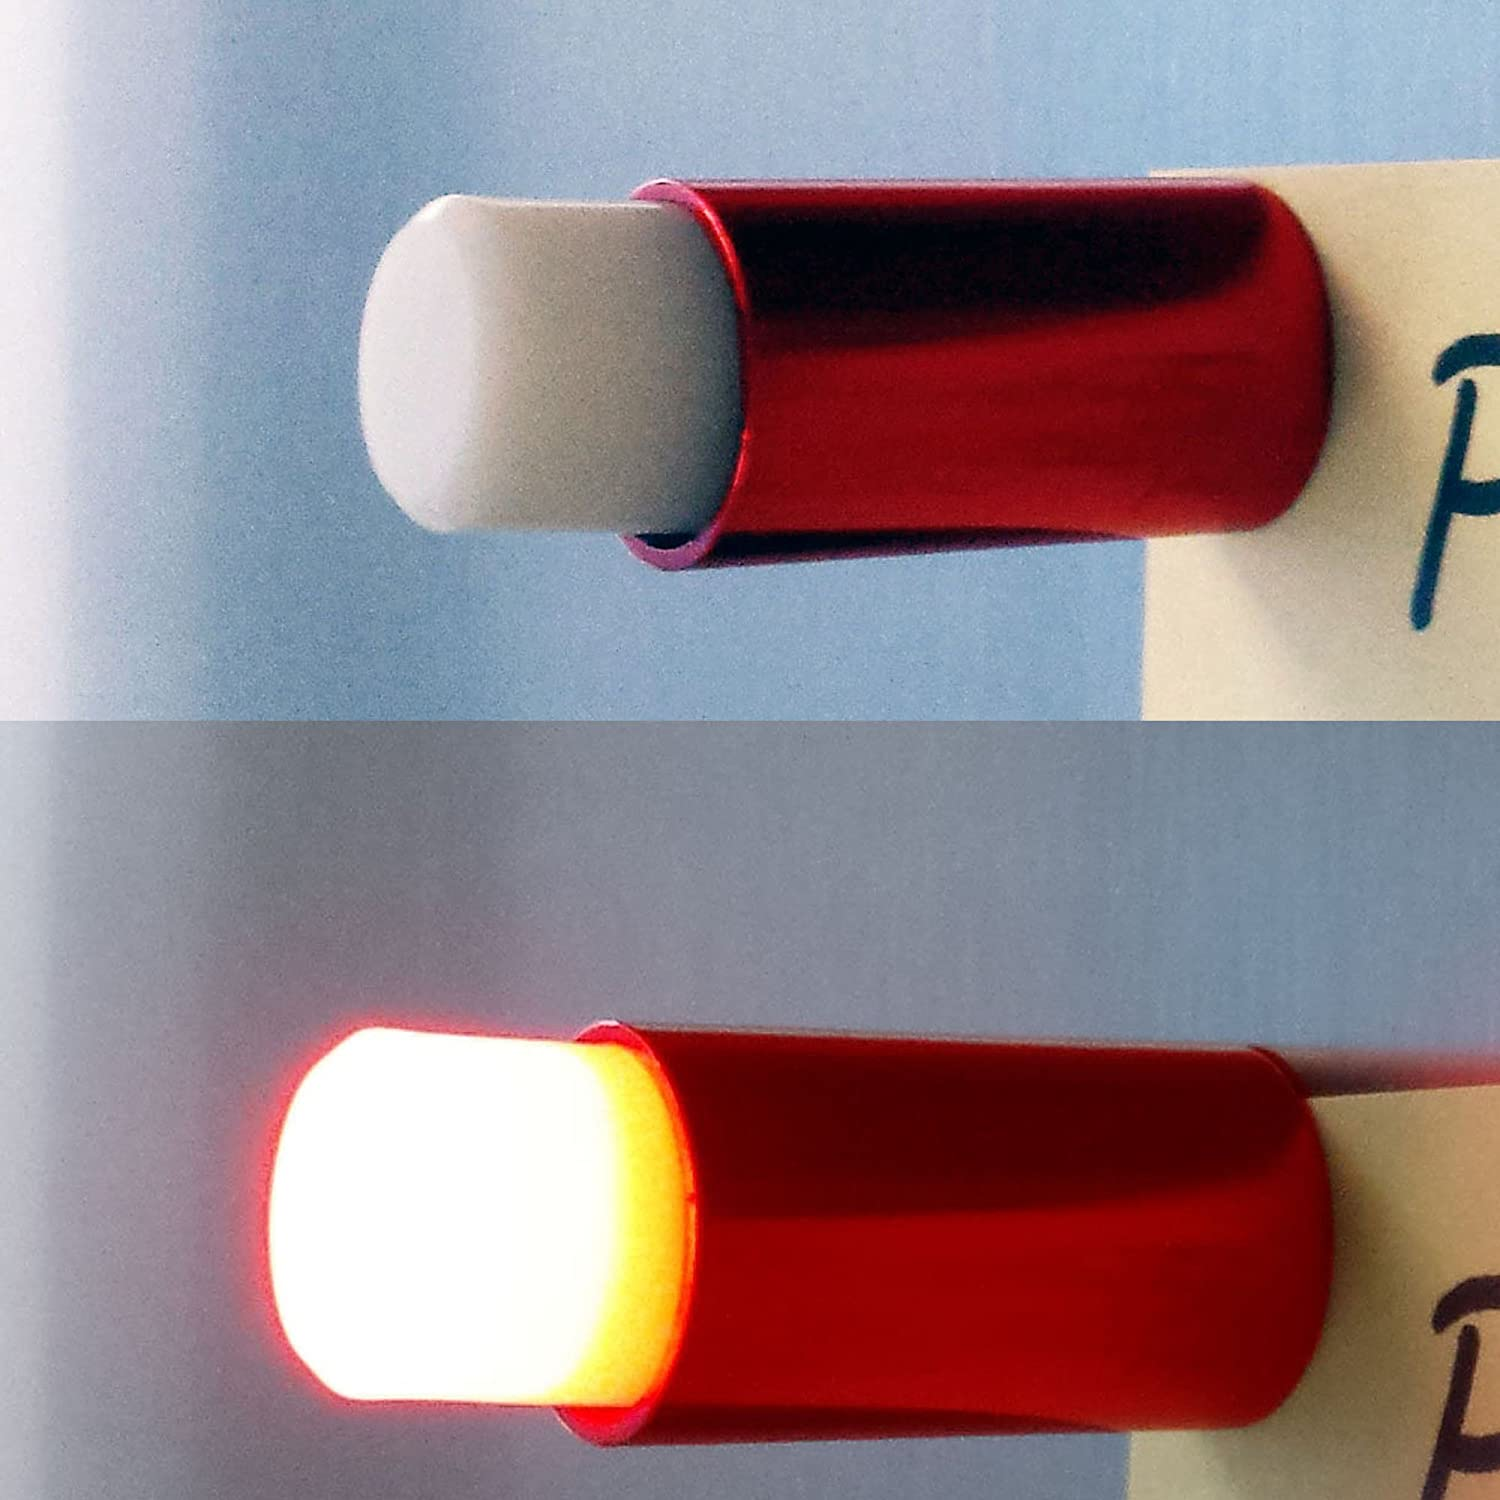 Amazon.com: 4 Bright Red LED Push Pins, Button Magnets - Cool Fridge ...